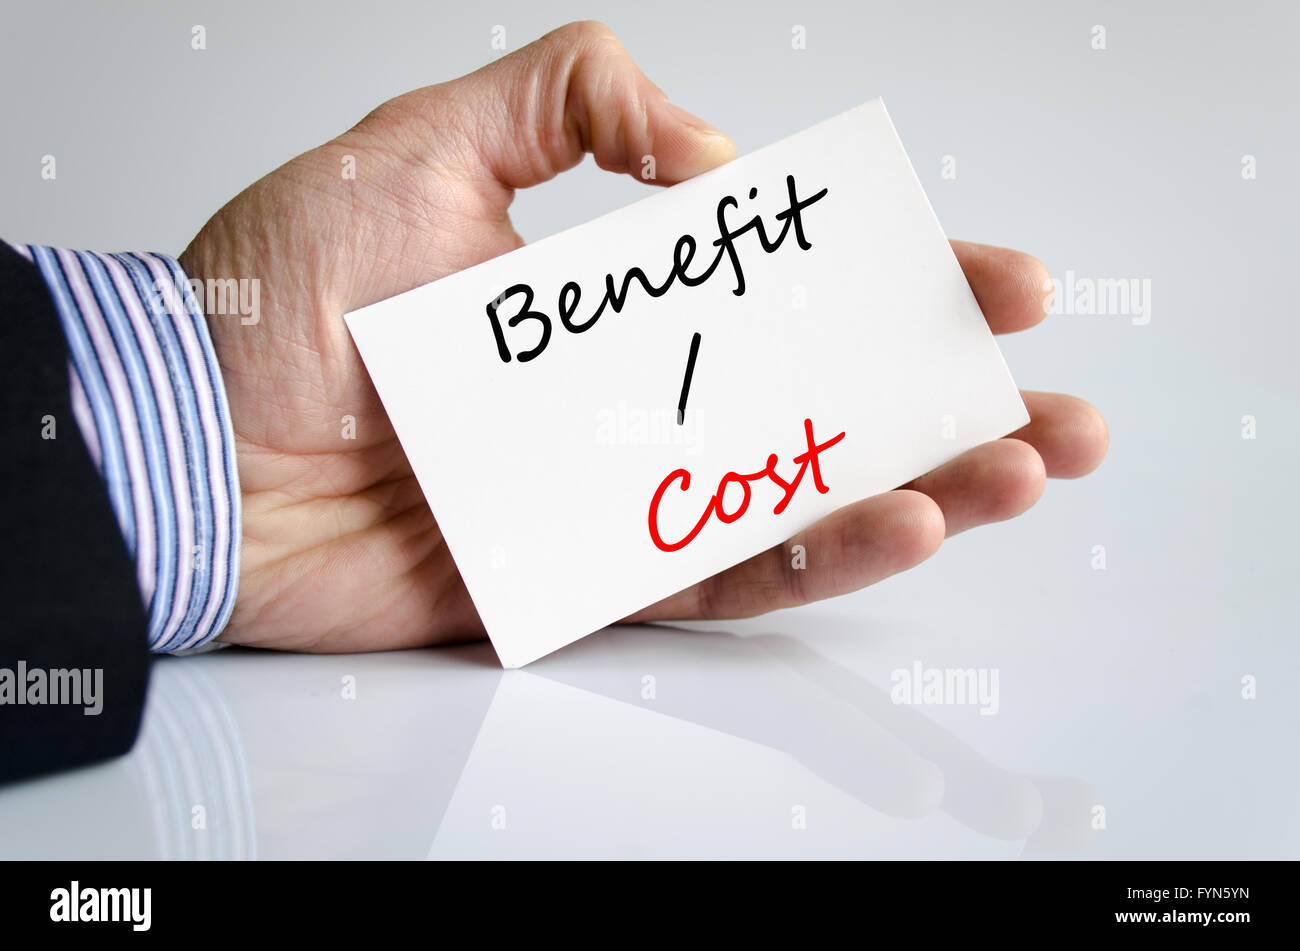 Benefits cost Text Concept - Stock Image